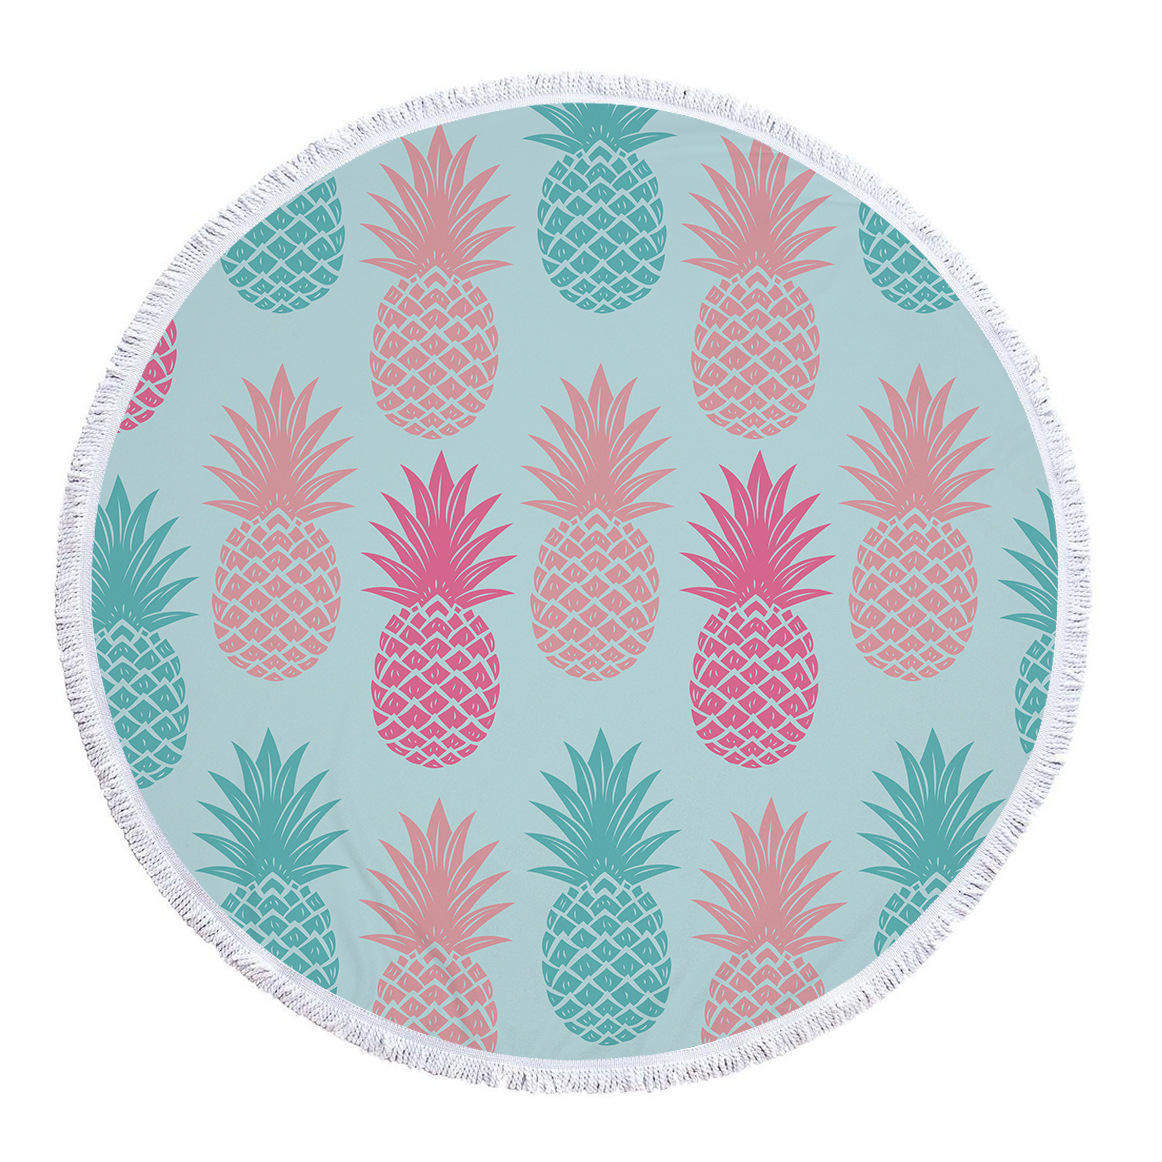 Popular Custom Comfortable High Quality Digital Printed Pineapple Large Bath Beach Towel For Adults